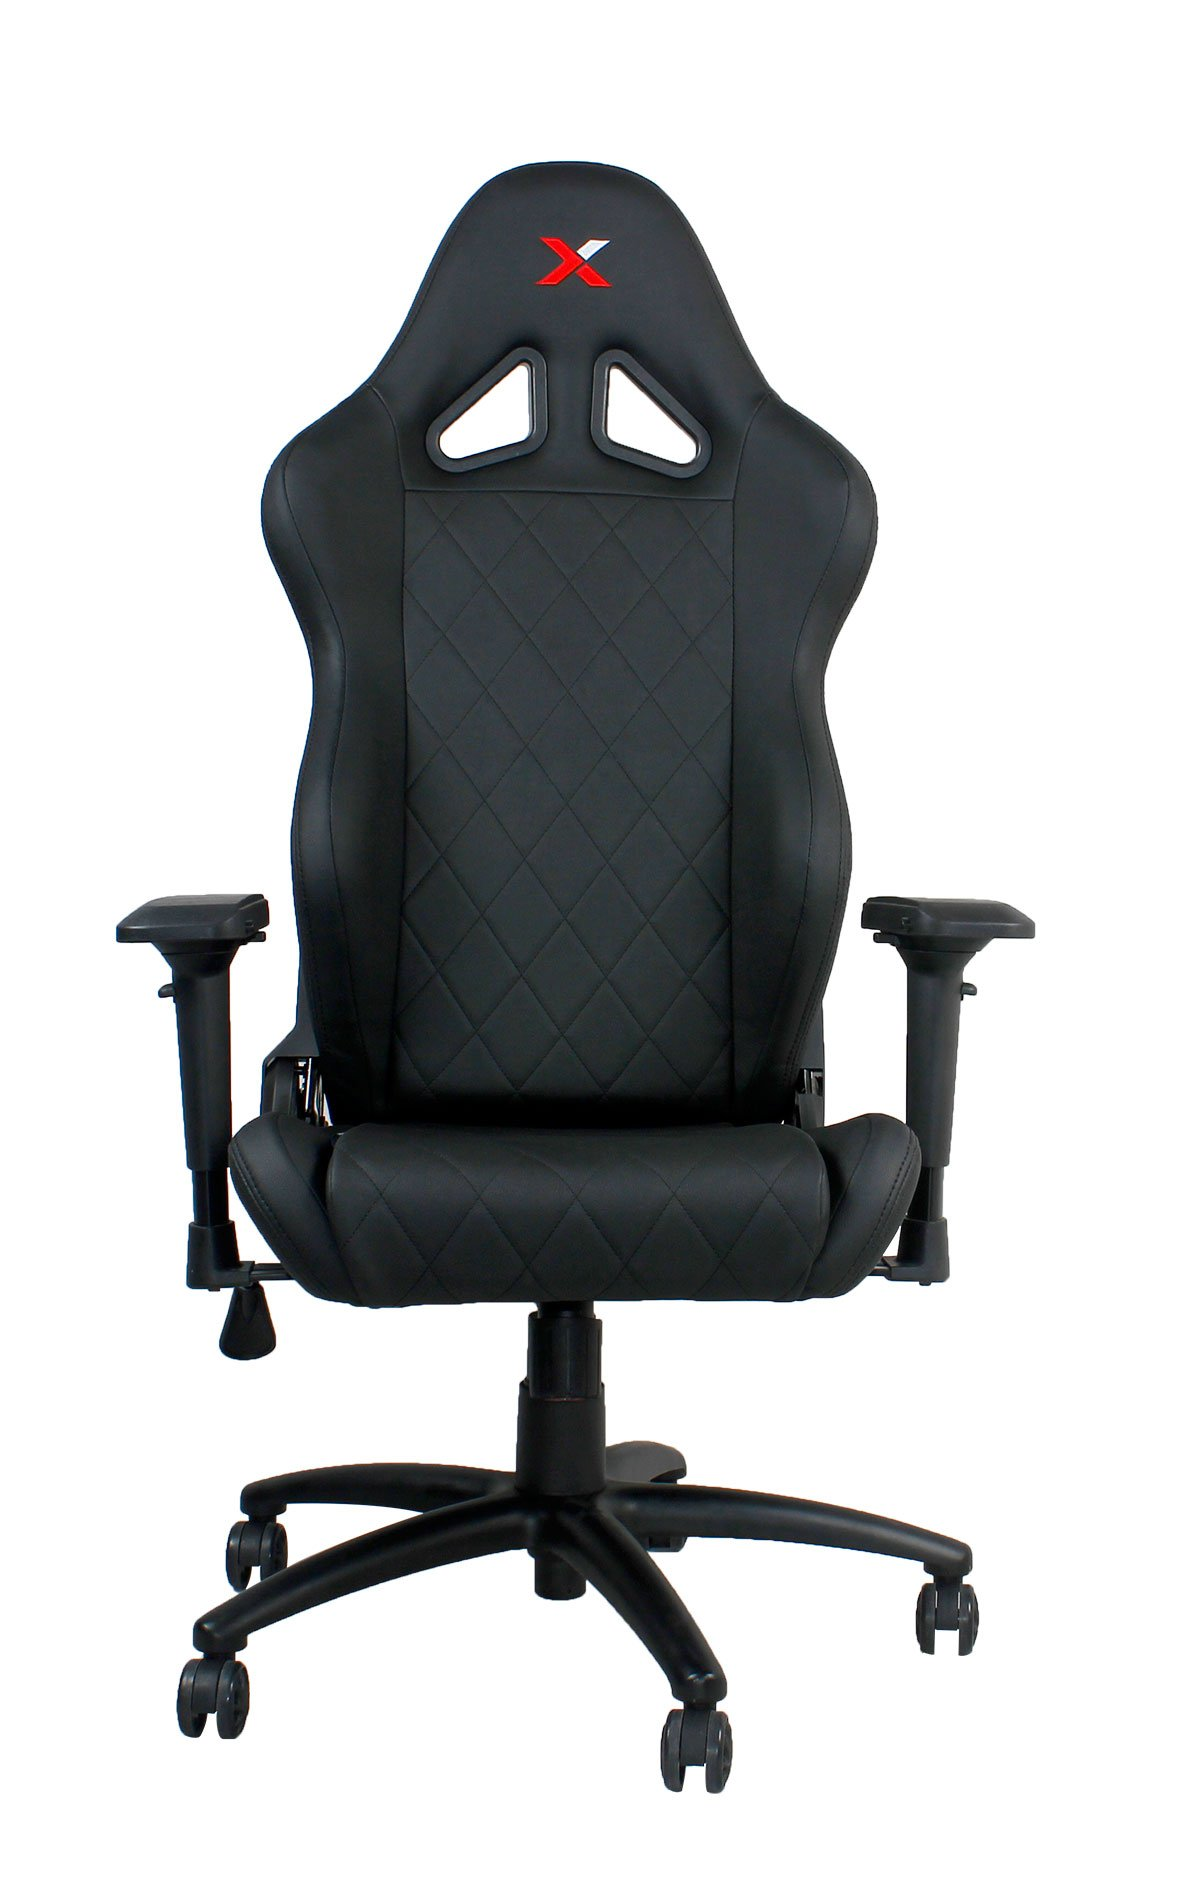 Ferrino Line Black on Black Diamond Patterned Gaming and Lifestyle Chair by RapidX